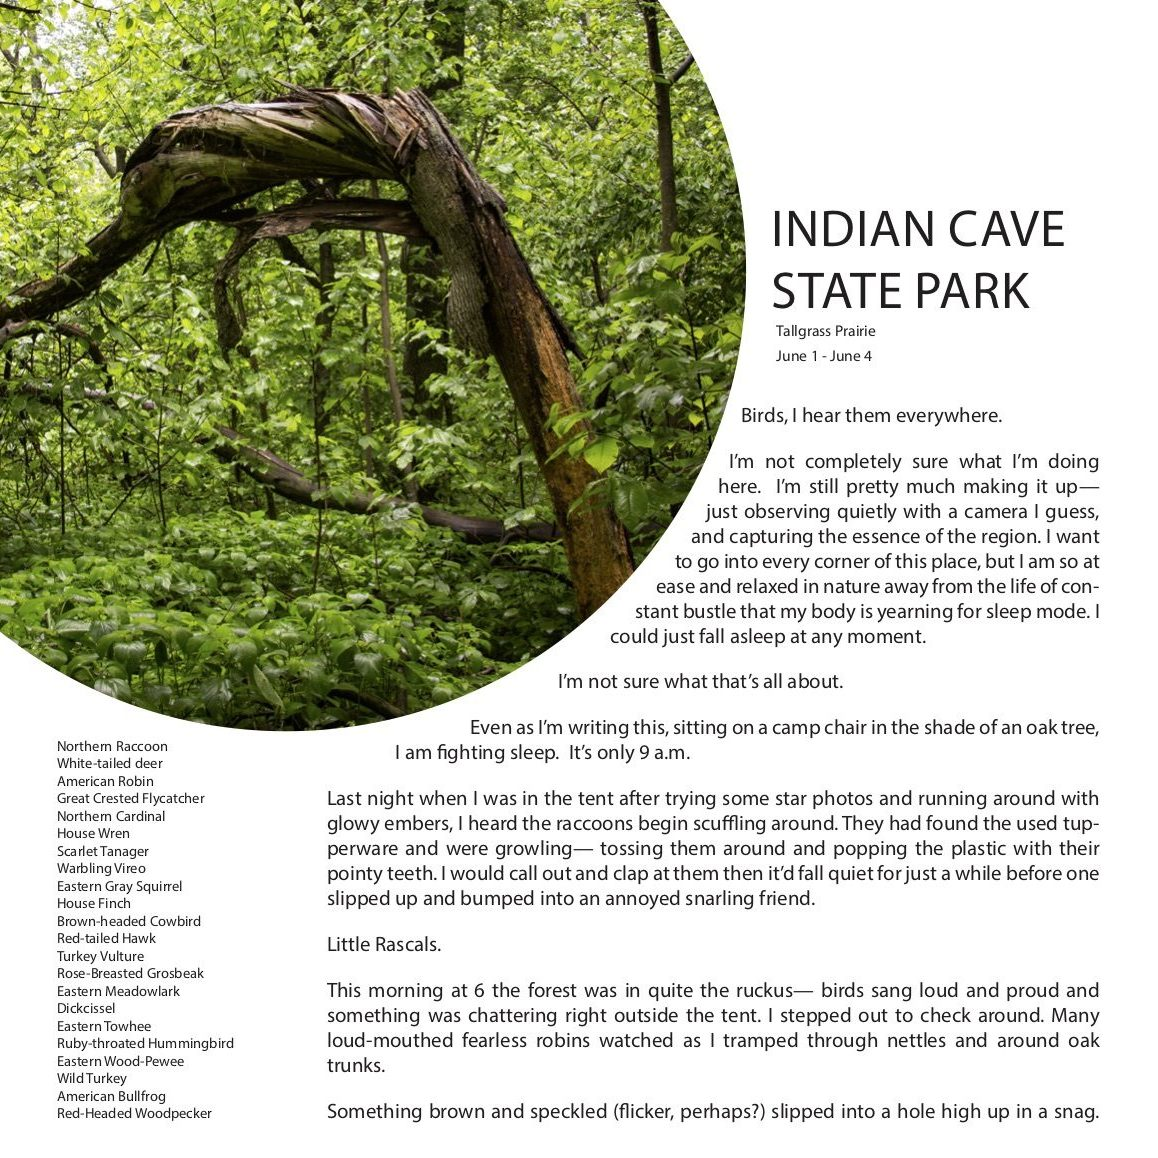 Indian Cave